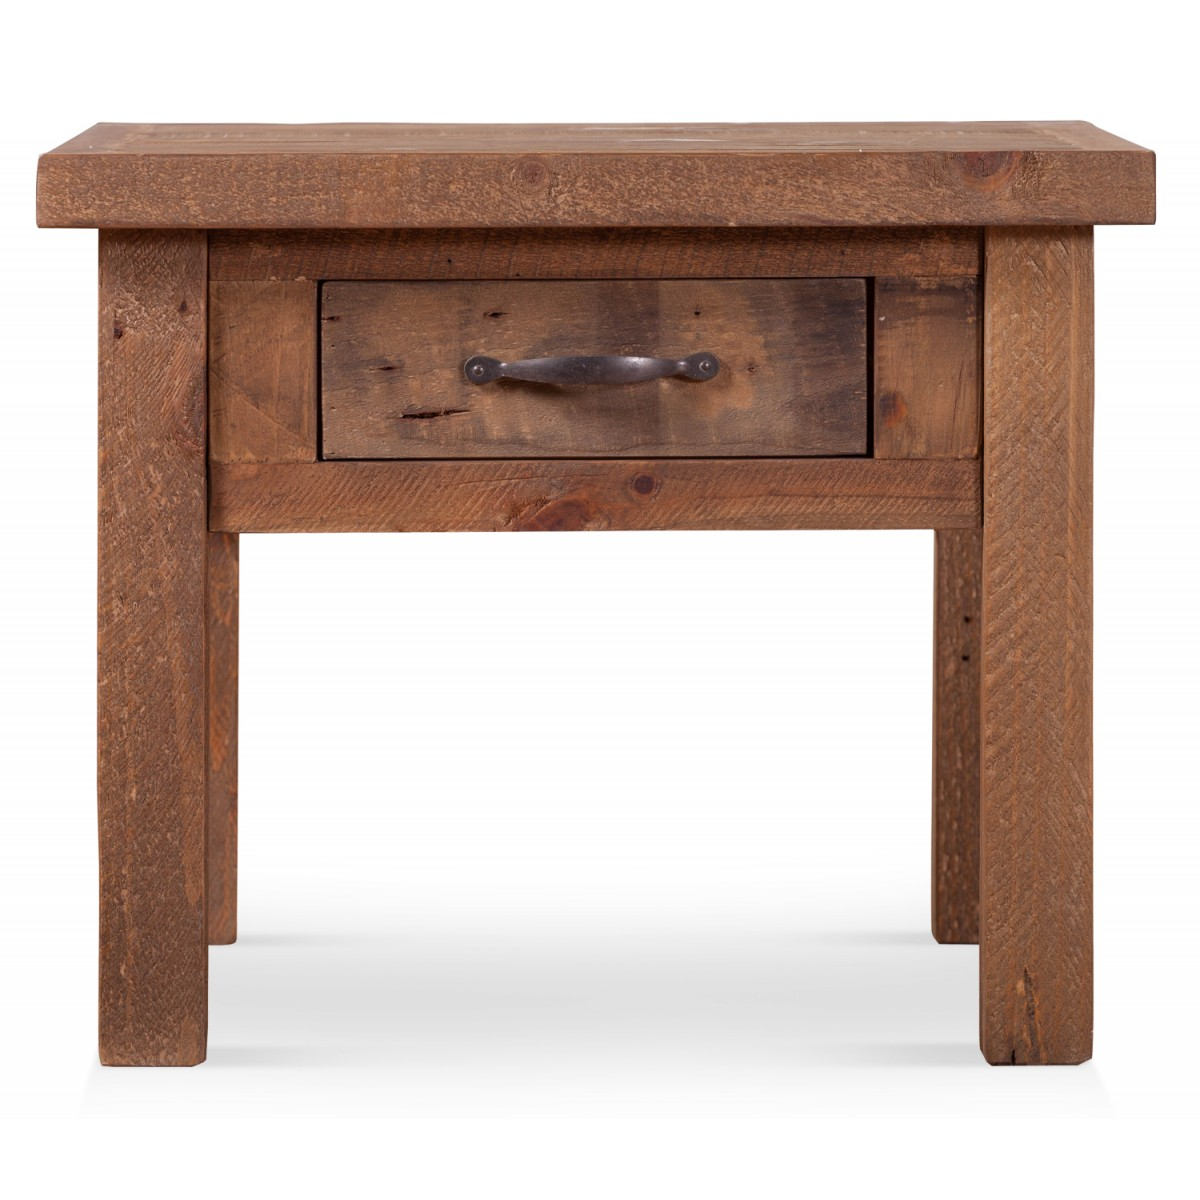 Table de chevet 1 Tiroir Bois Marron 60x60x50cm